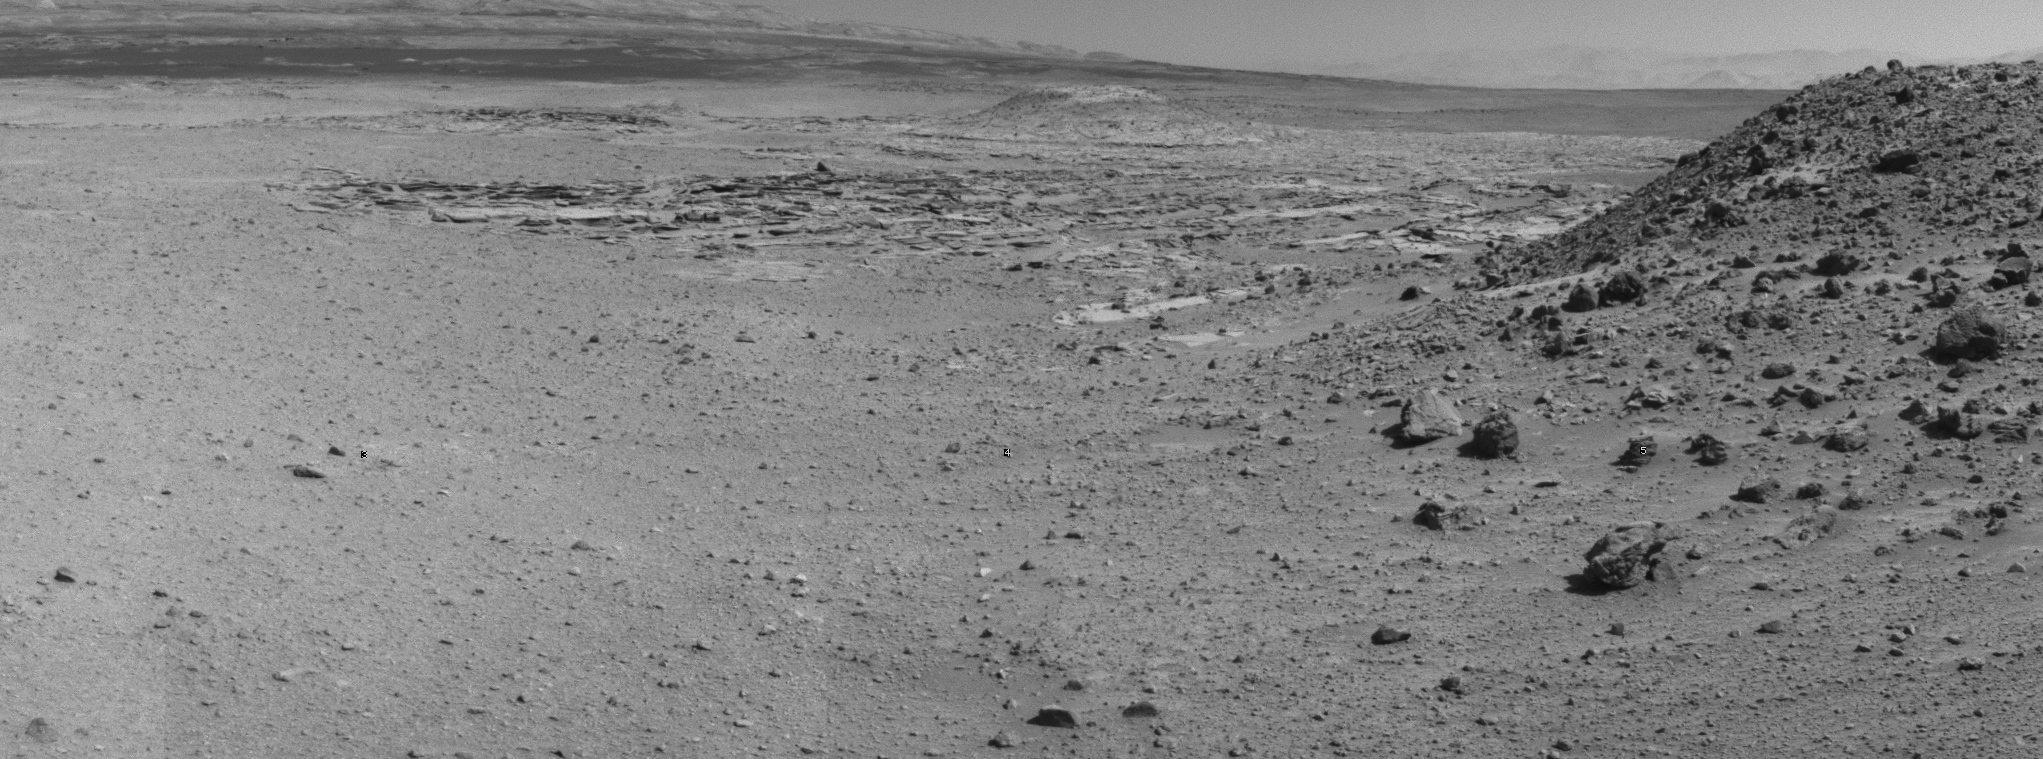 Day Before Curiosity's Final Approach Drive to 'the Kimberley' Waypoint